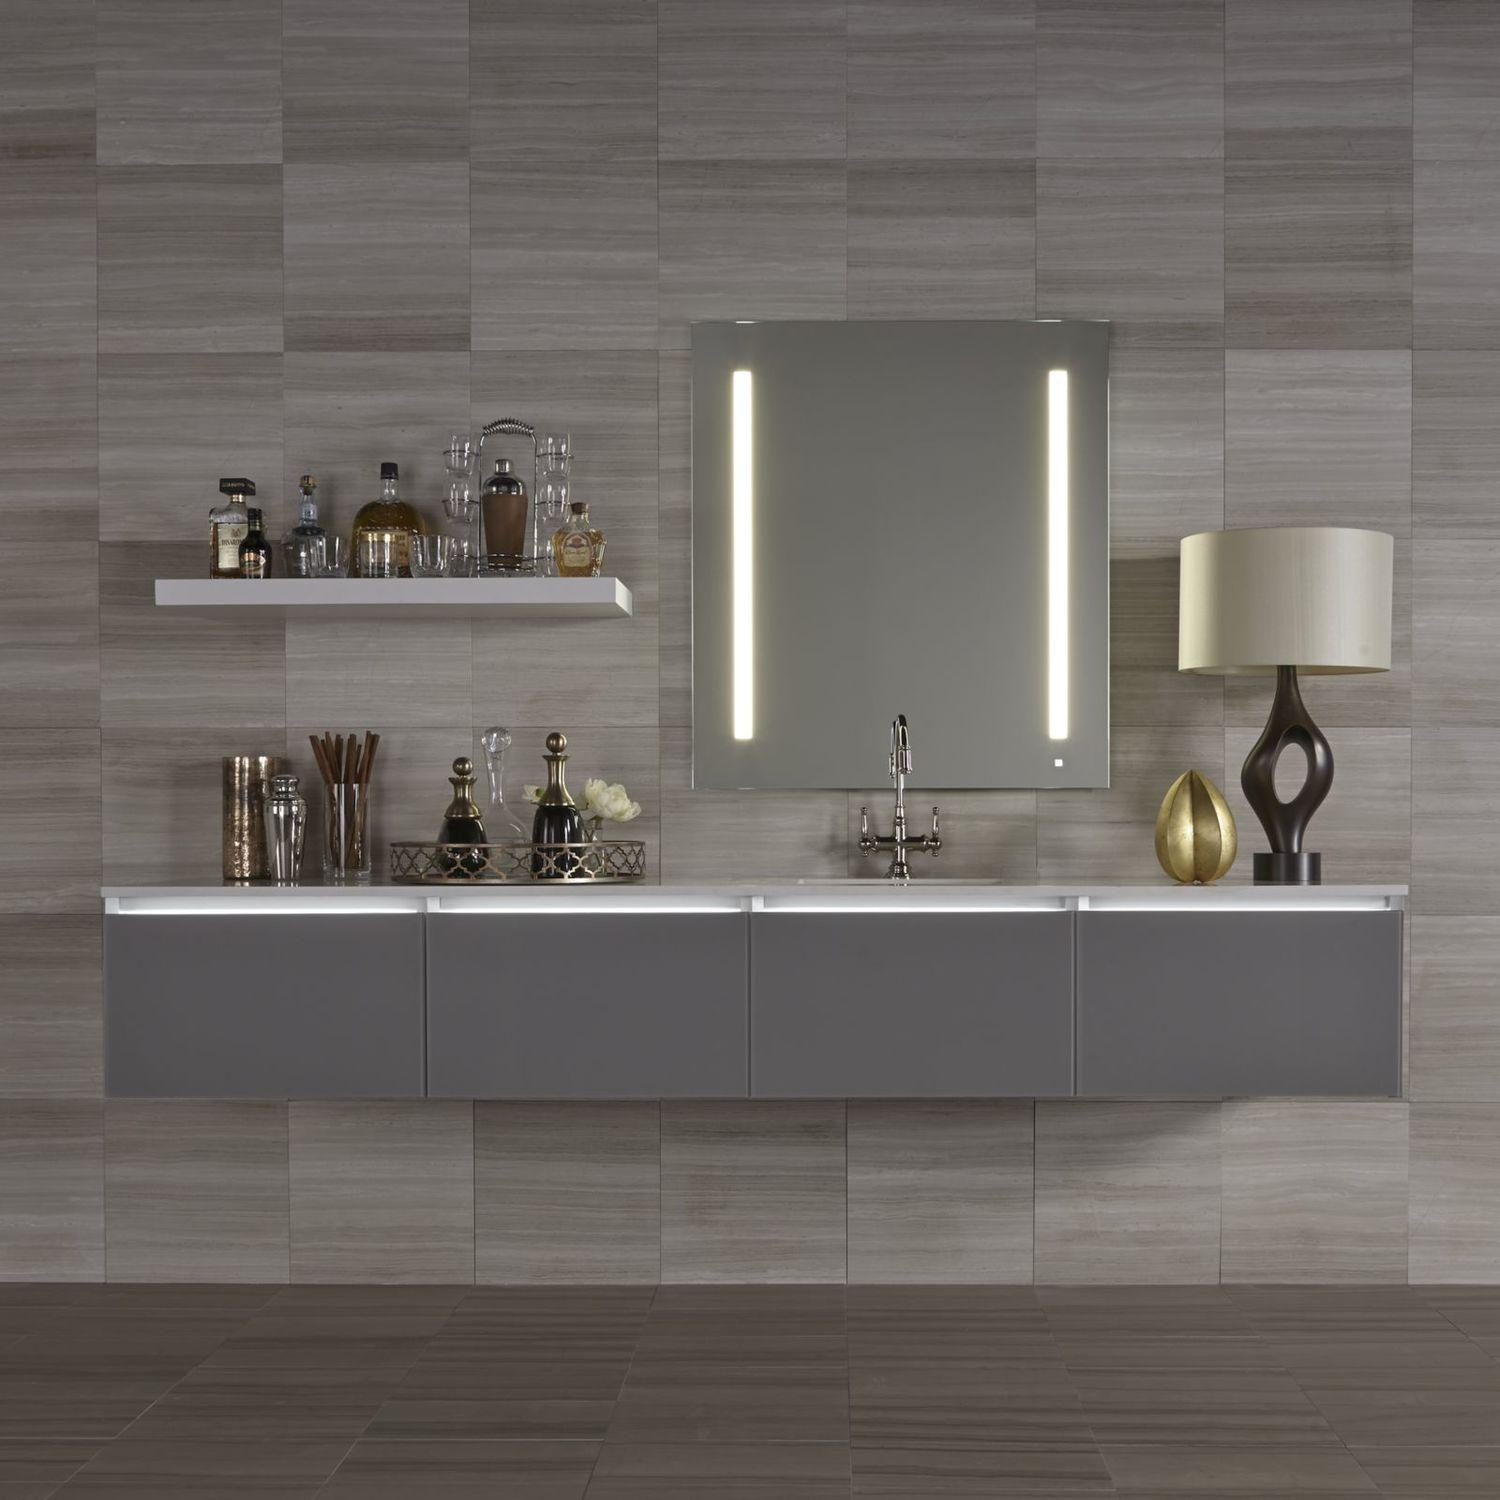 """Additional Aio 23-1/8"""" X 29-7/8"""" X 1-1/2"""" Lighted Mirror With Lum Lighting At 2700 Kelvin Temperature (warm Light), Dimmable and Usb Charging Ports"""